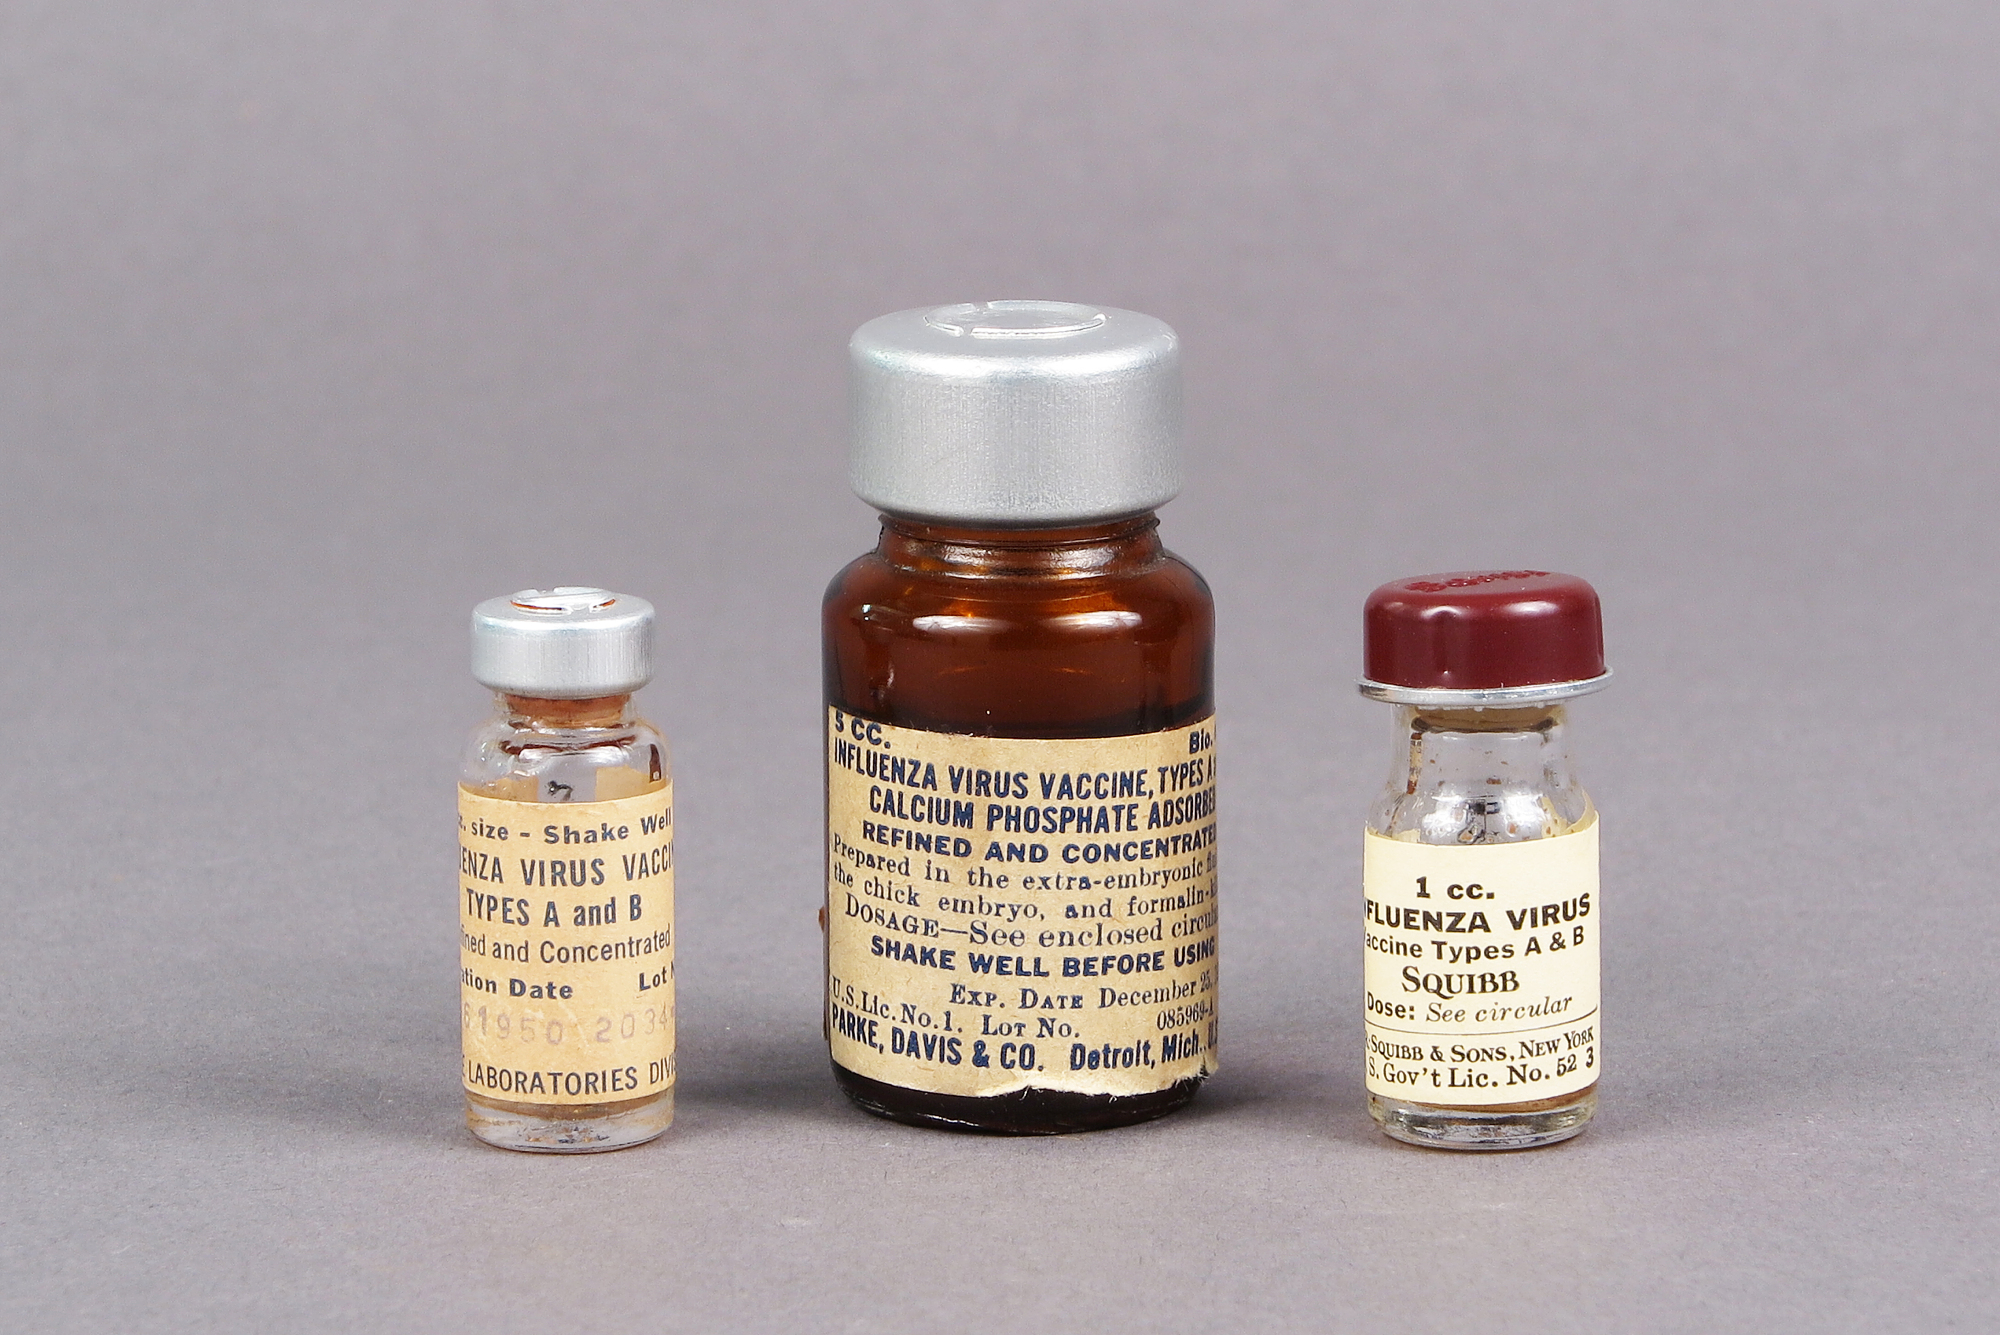 Three examples of early Influenza Virus Vaccine, Types A and B, 1945-1952, made by Lederle Laboratories, Parke, Davis and Co., and E. R. Squibb & Sons.